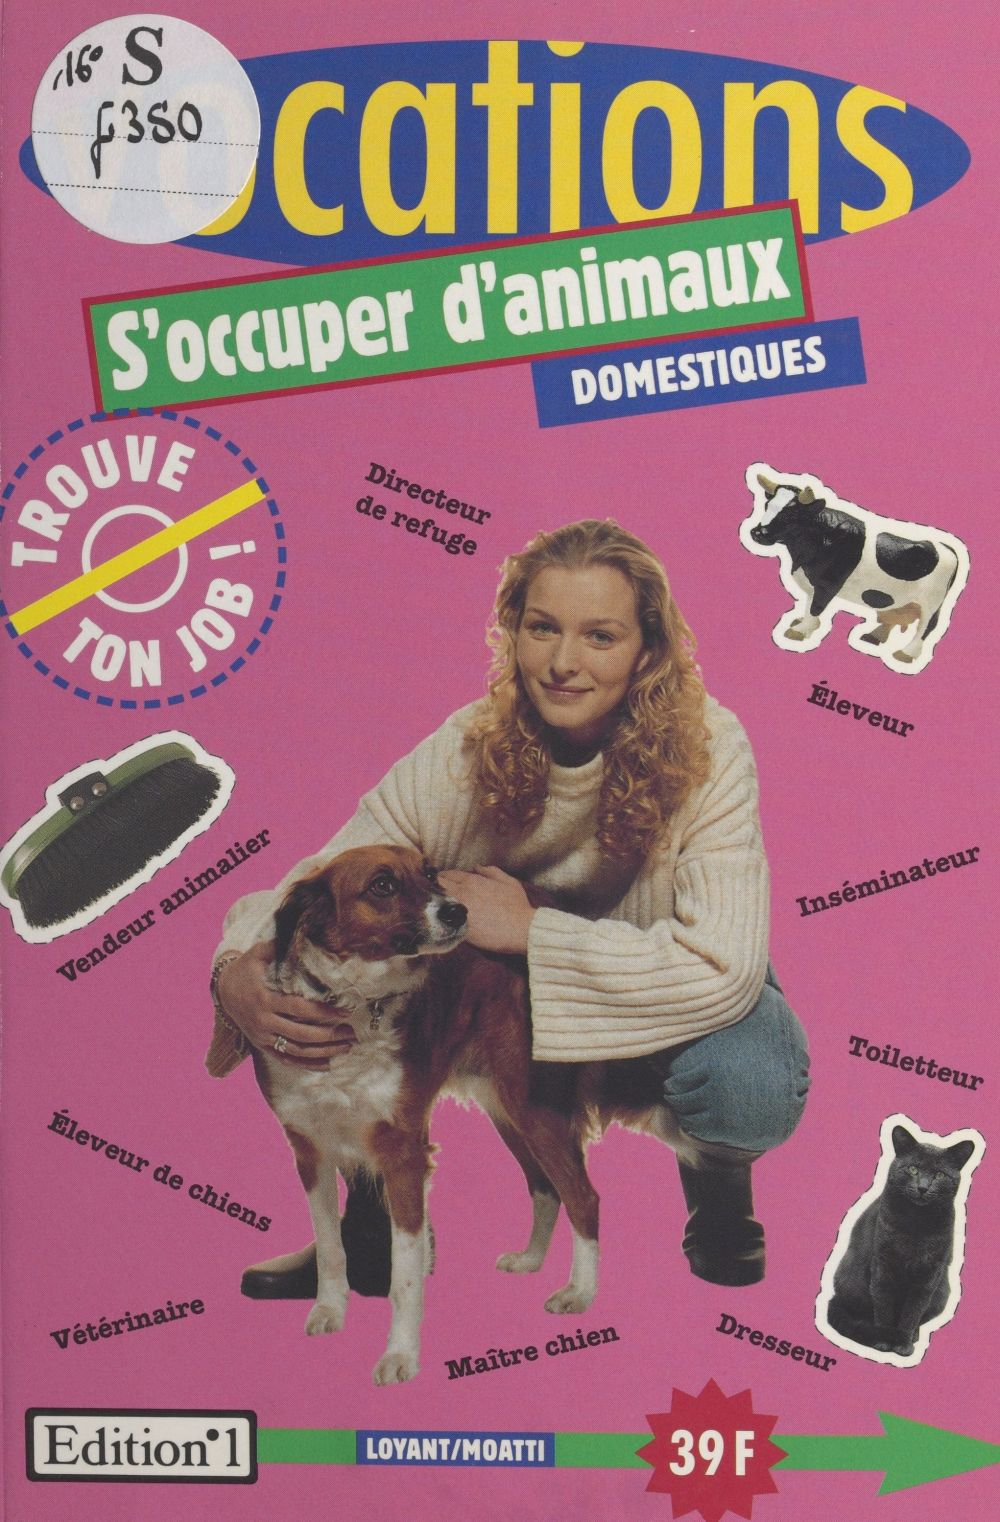 S'occuper d'animaux domestiques